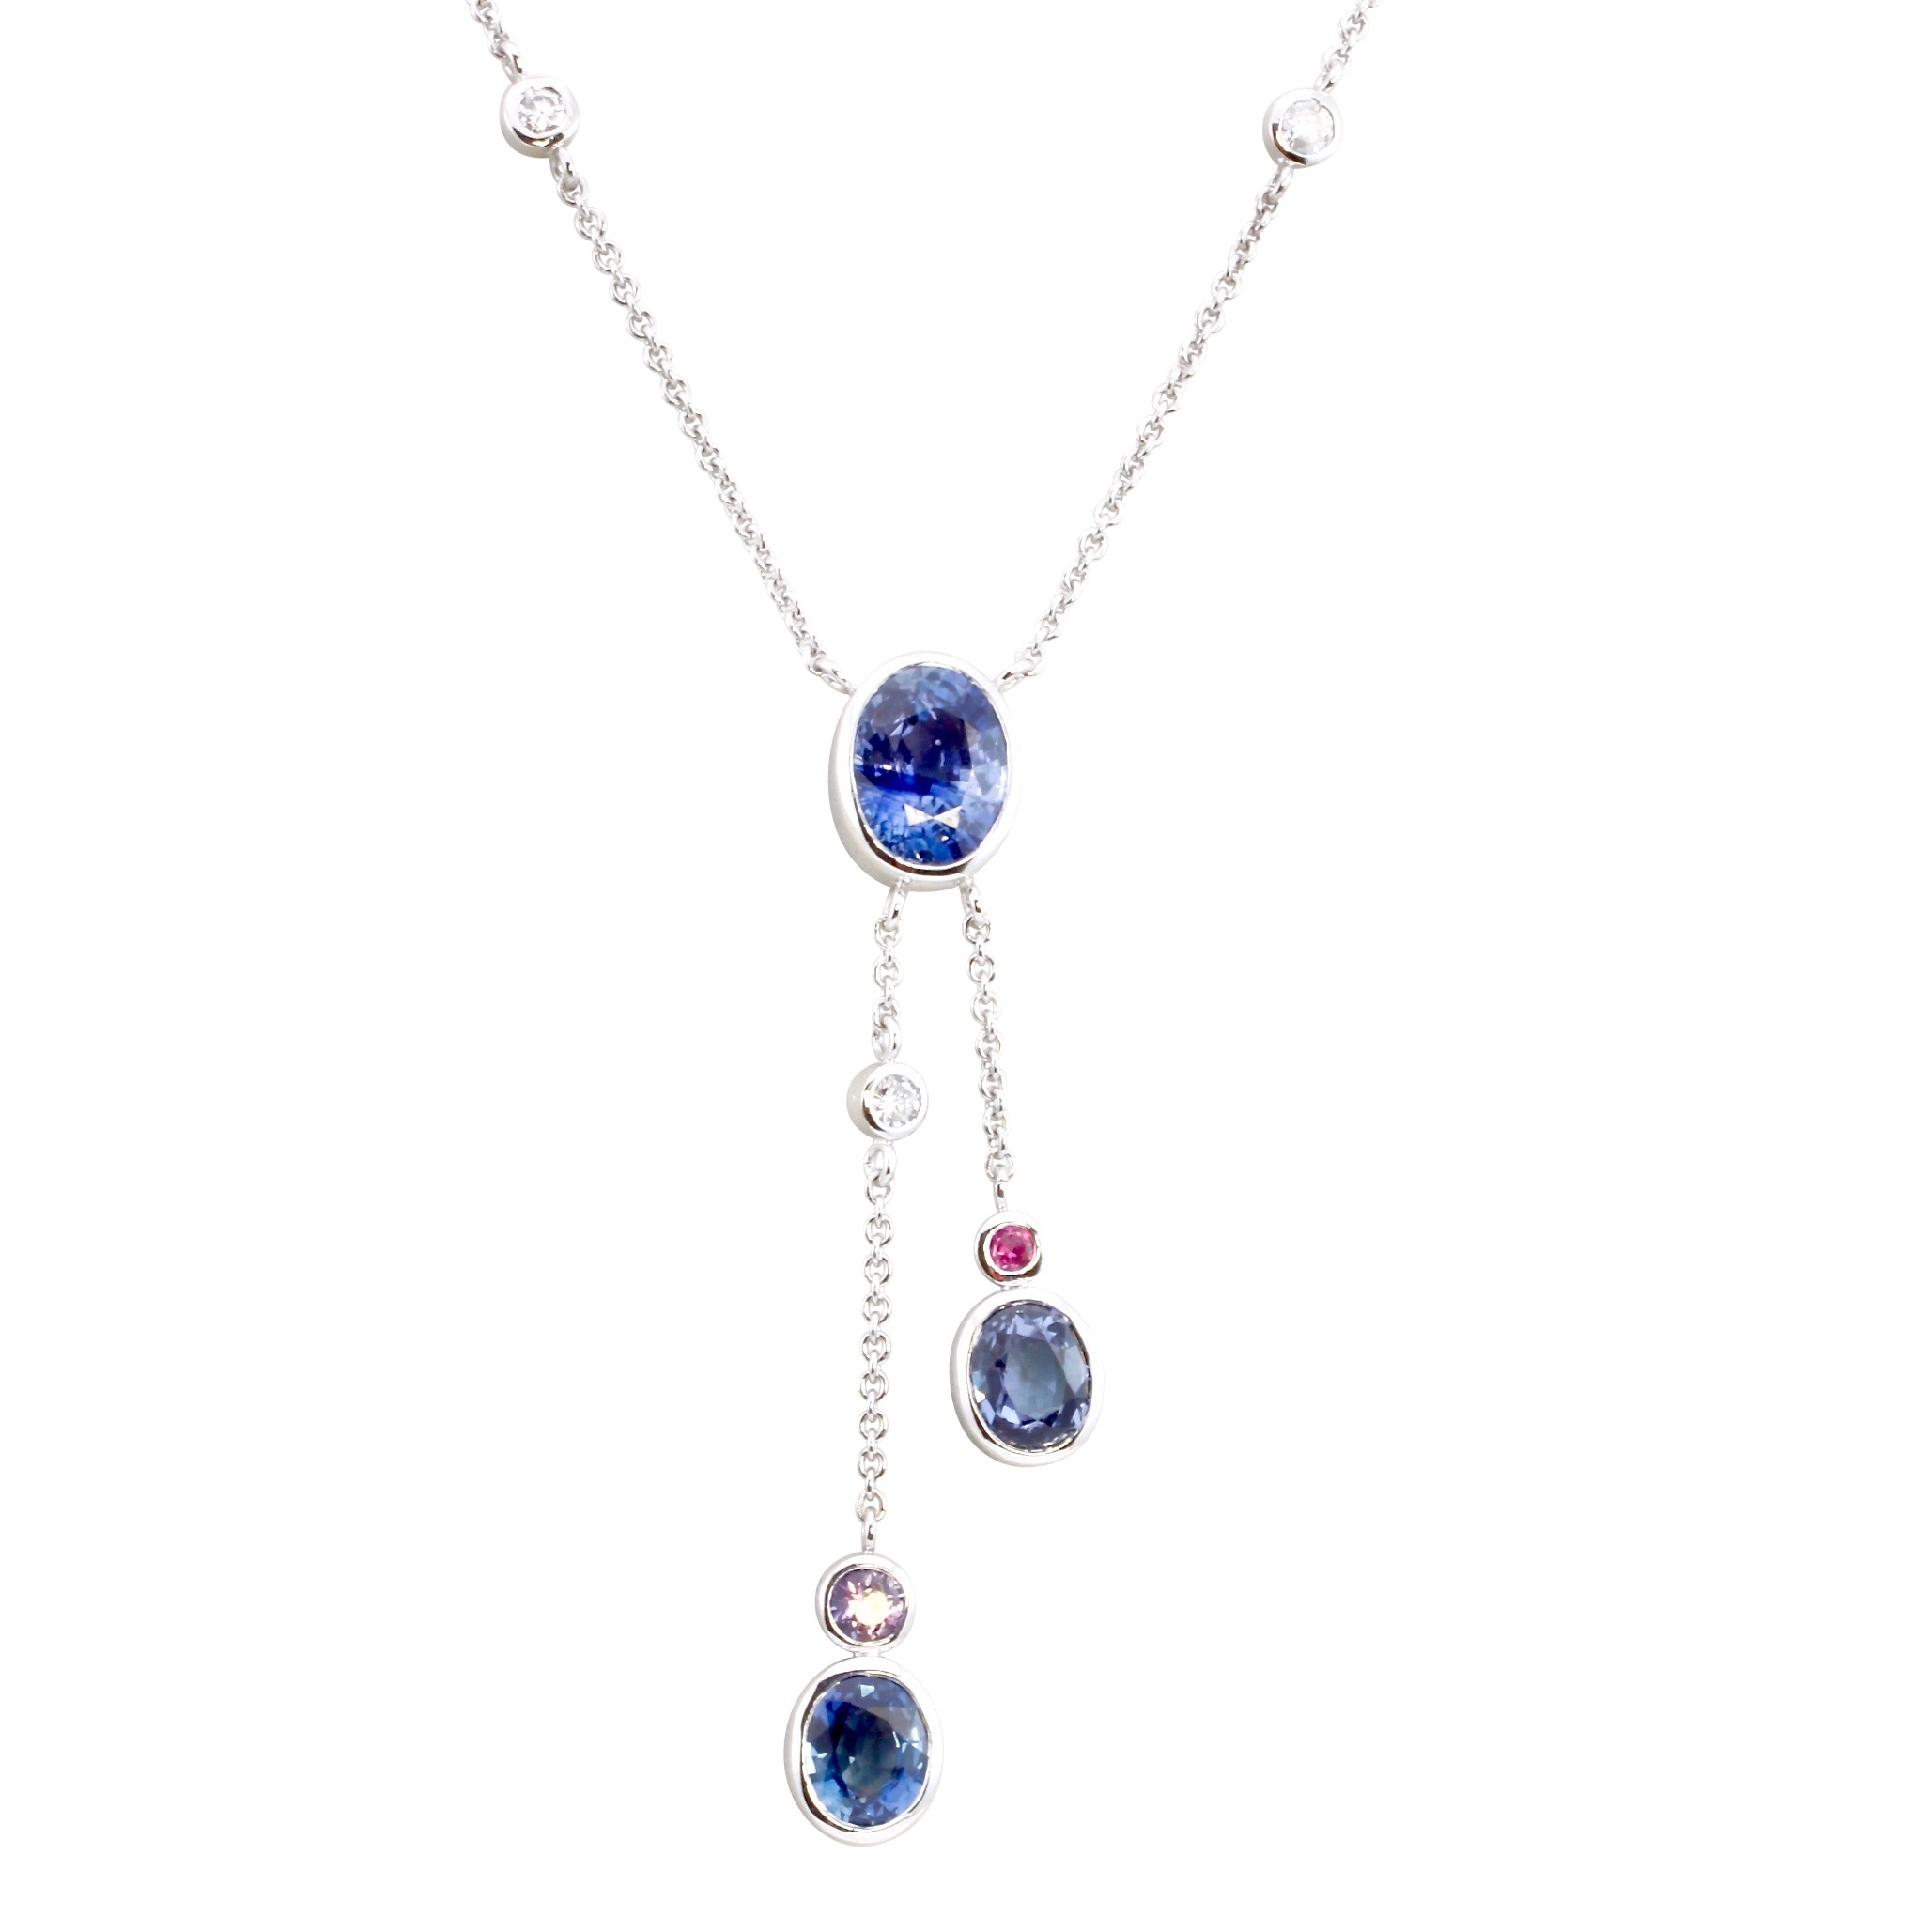 Sapphire and diamond lavalier necklace in white gold